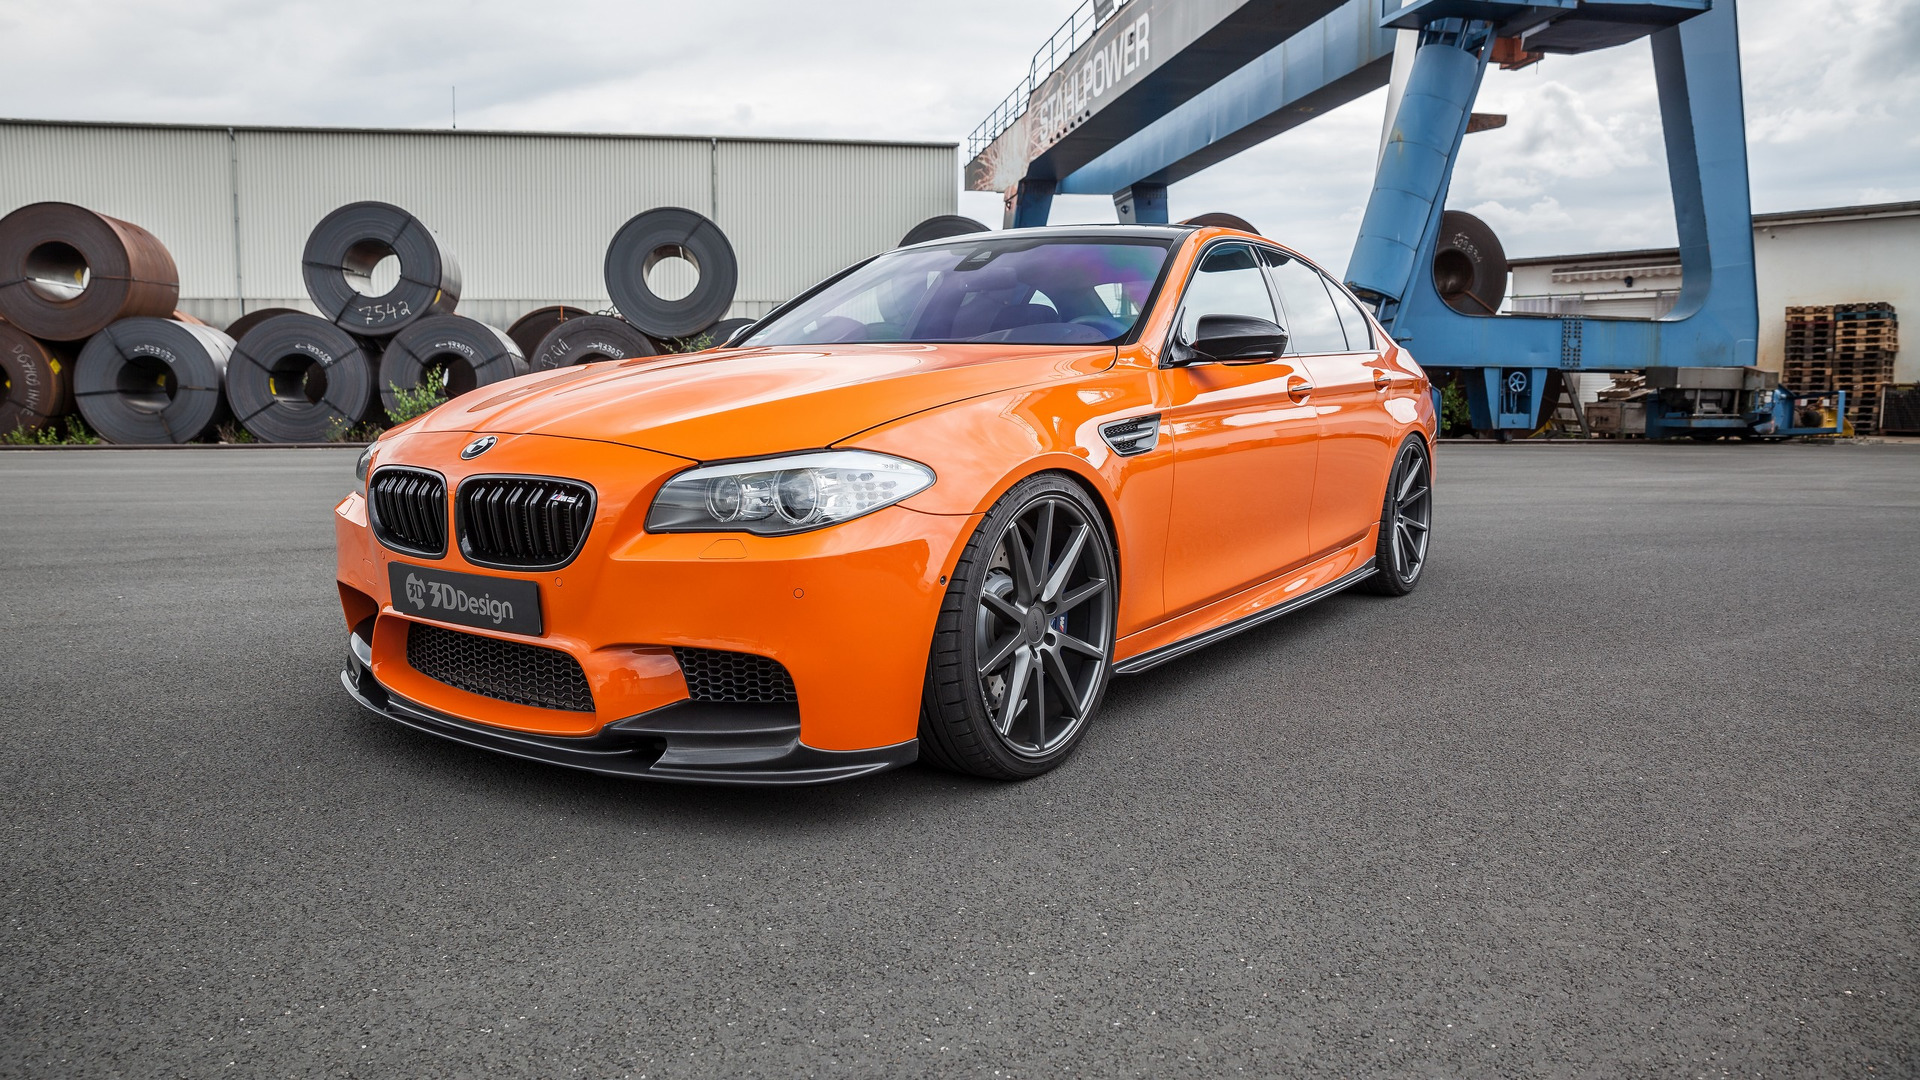 Tuner creates one of the most powerful BMW M5s in the world